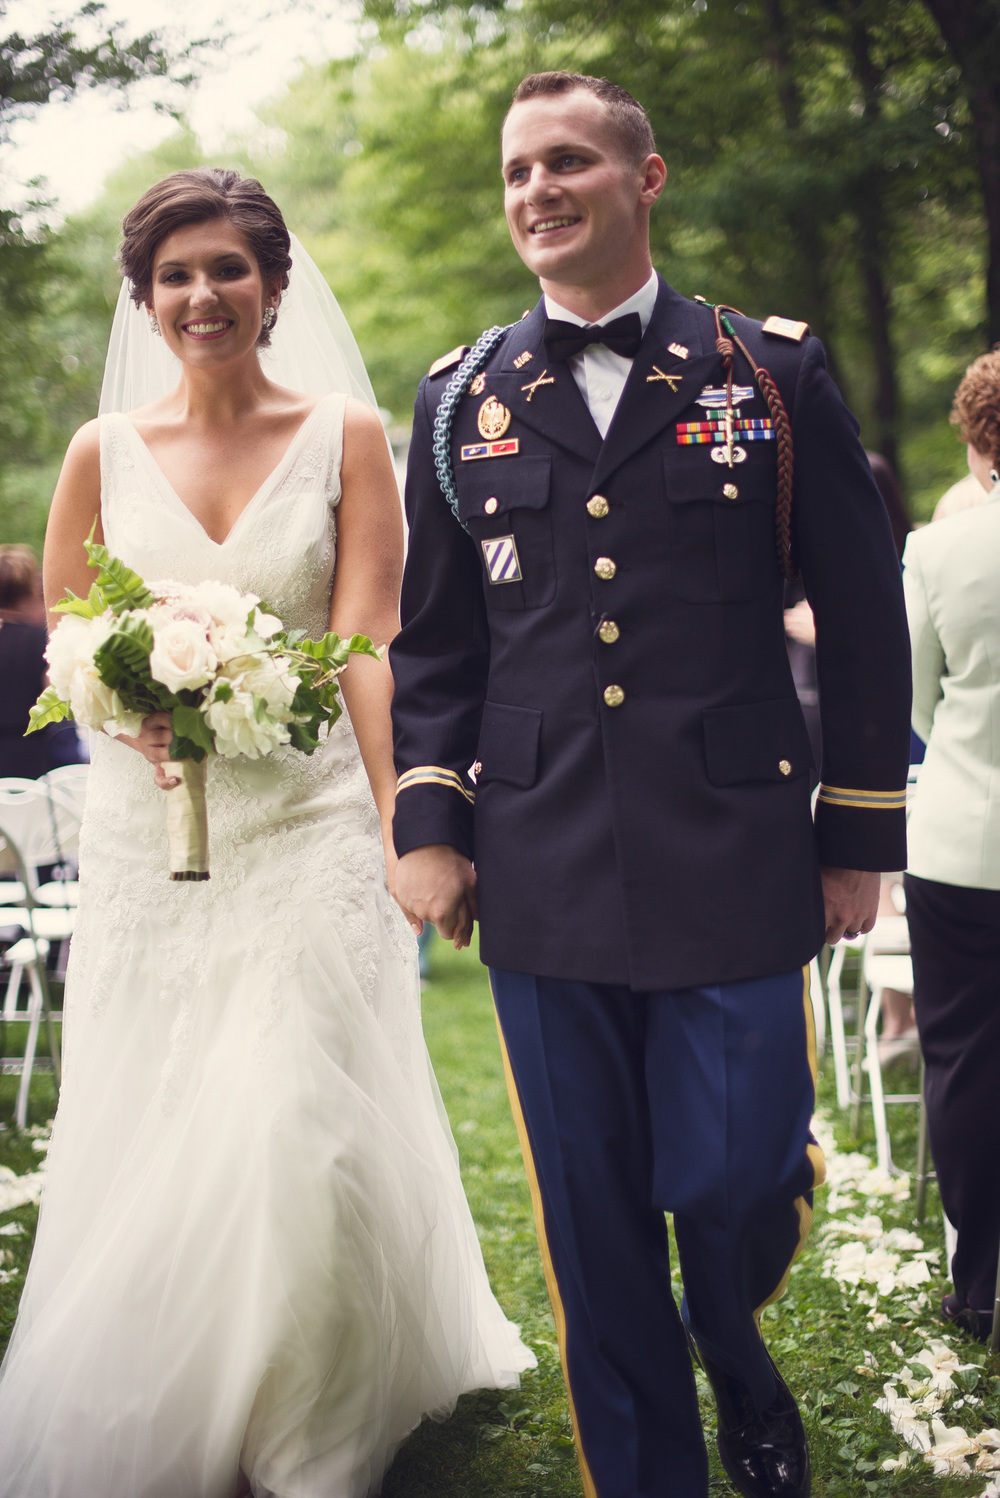 wedding bride groom 1LT First Lieutenant ceremony husband wife marriage THPHOTO Mountain Spring Lake Hotel